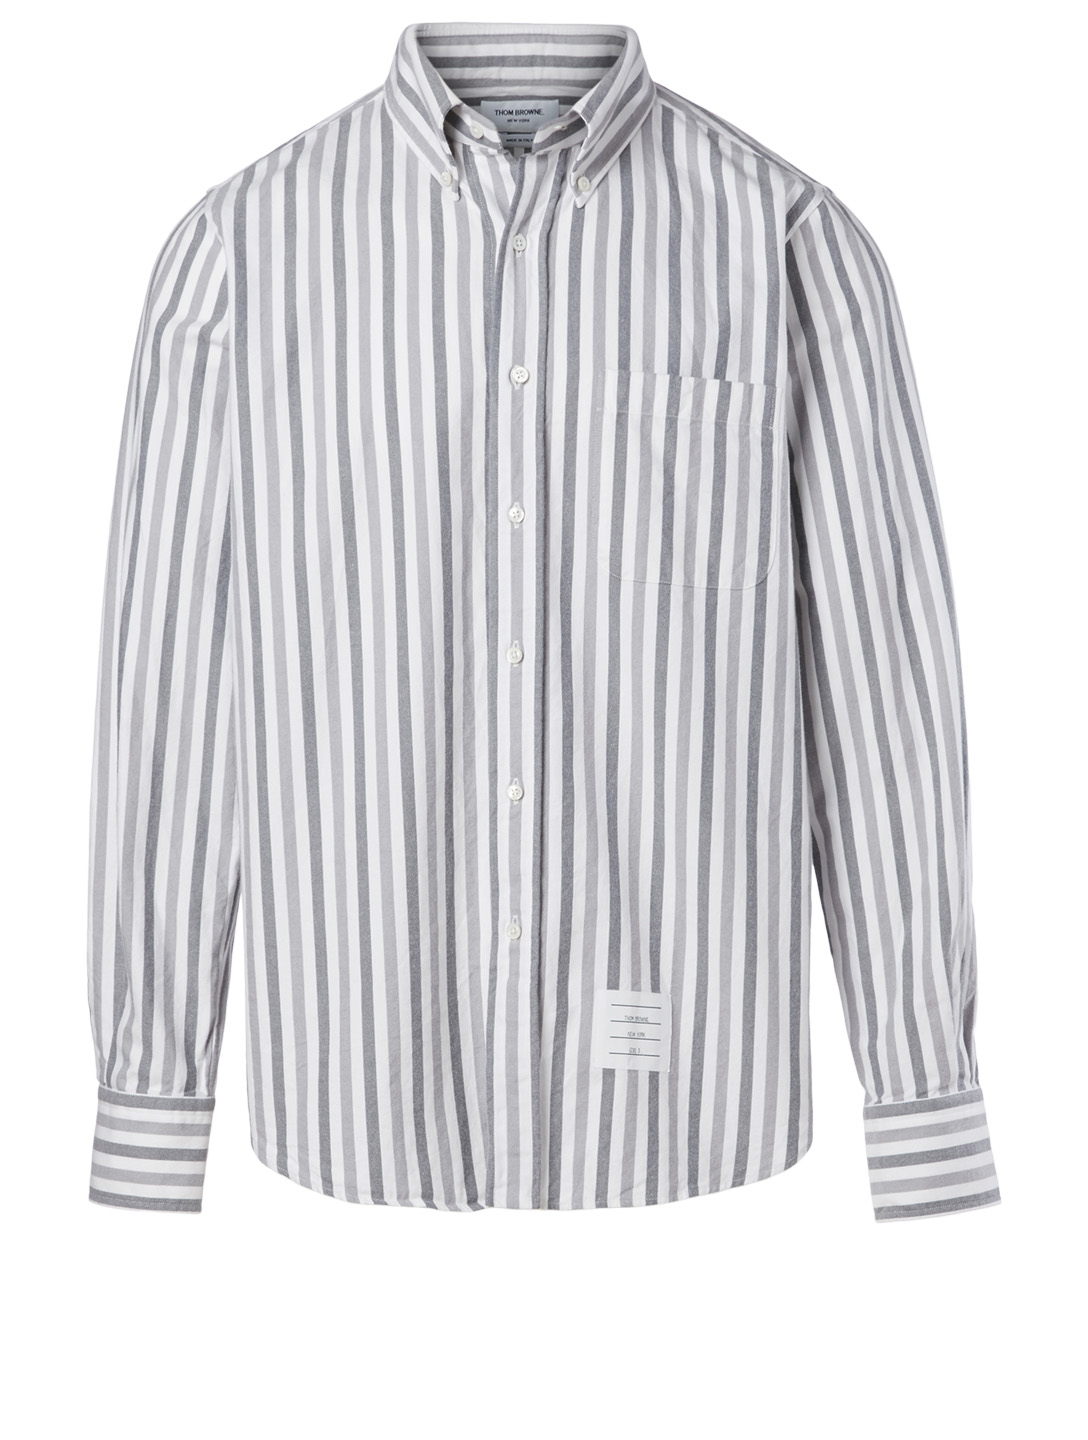 THOM BROWNE Cotton Shirt In Stripe Print Men's Grey